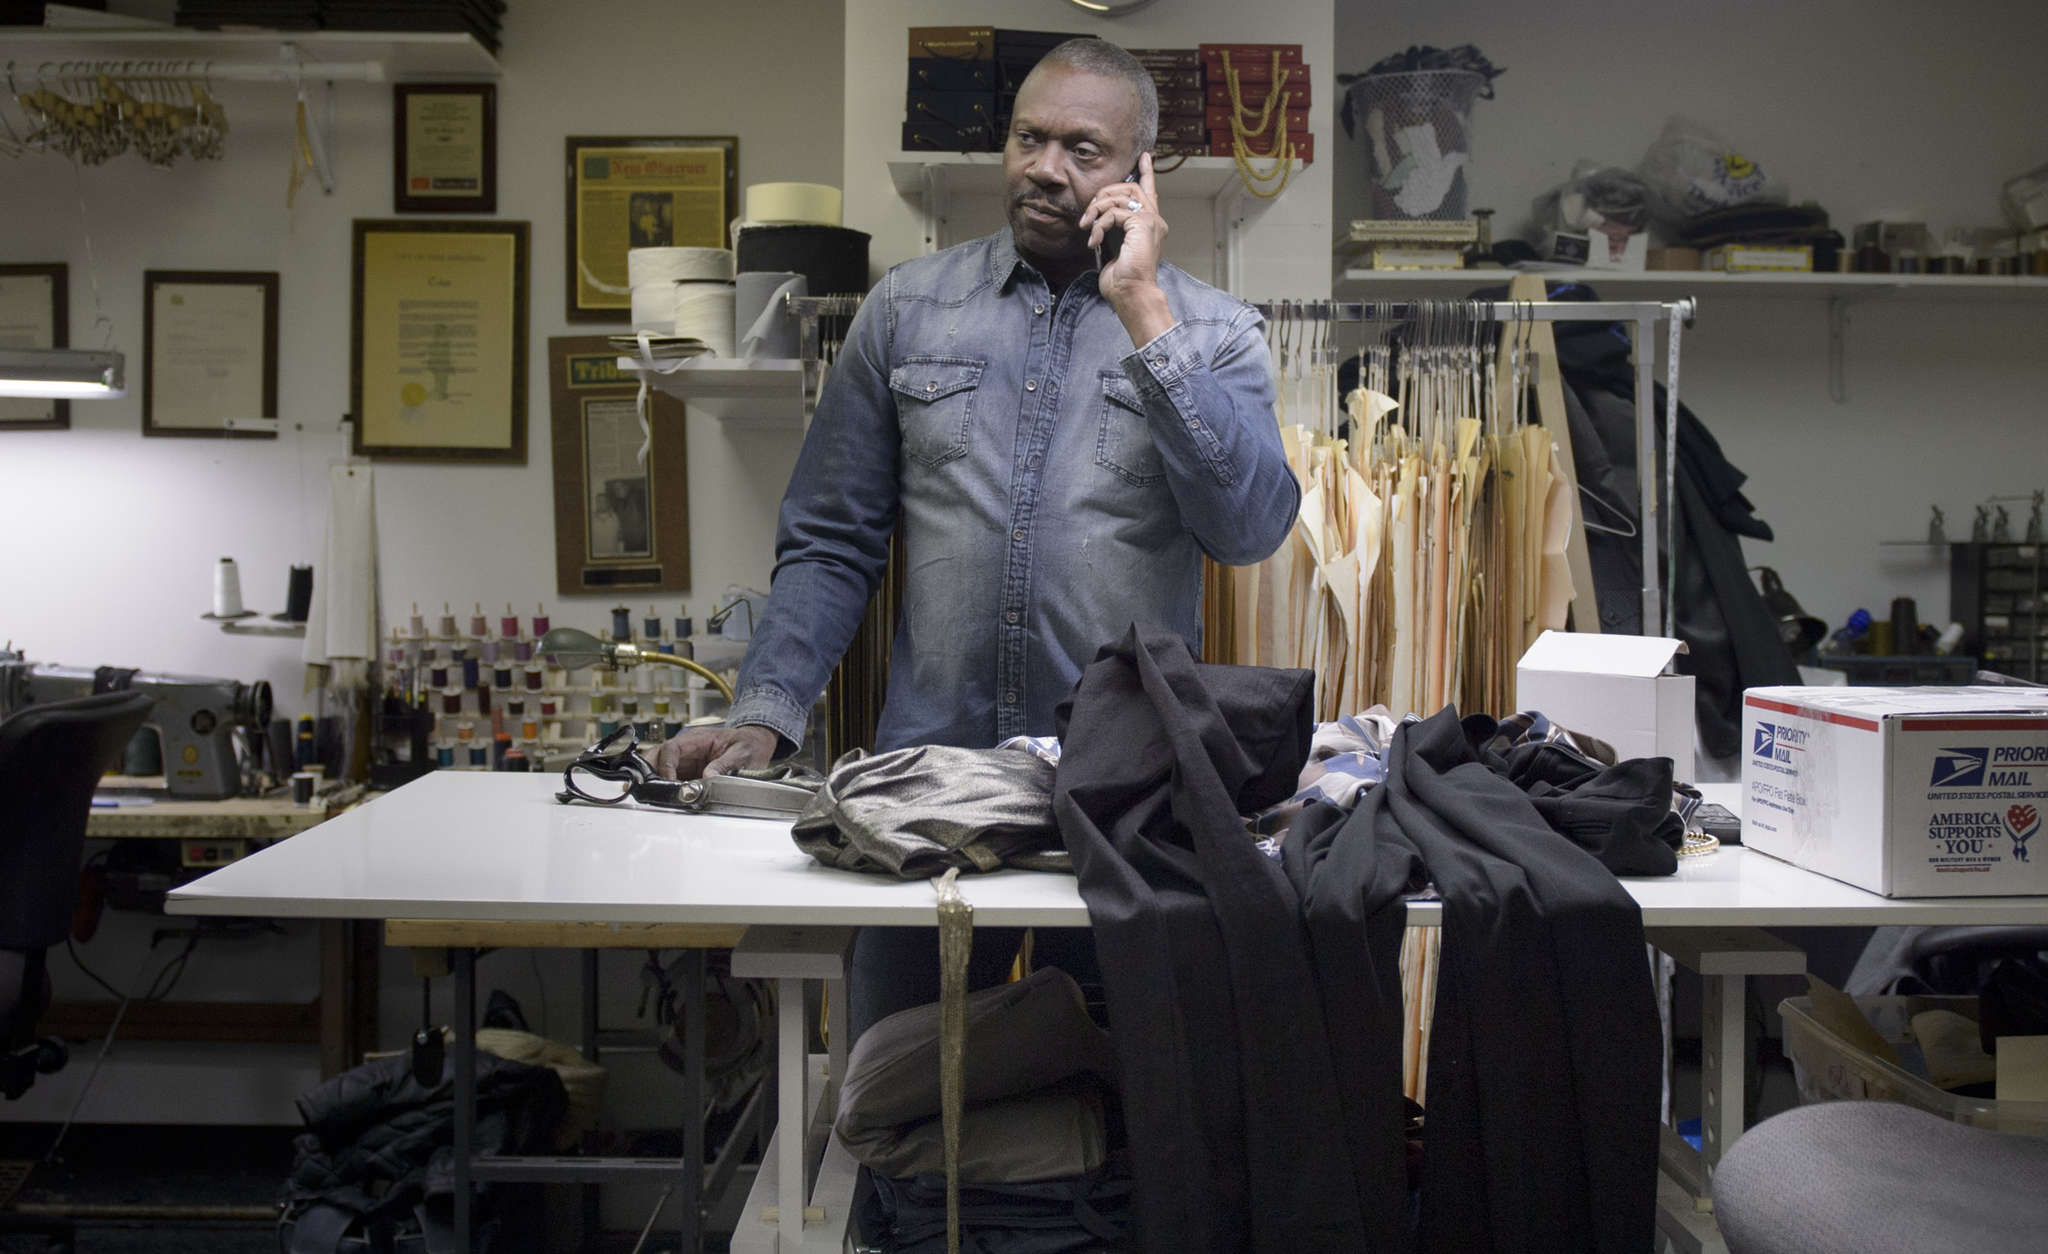 Ron Wilch works his magic at the Wardrobe Clinic in Center City, a one-man shop that specializes in alterations for clients who purchase clothing online.